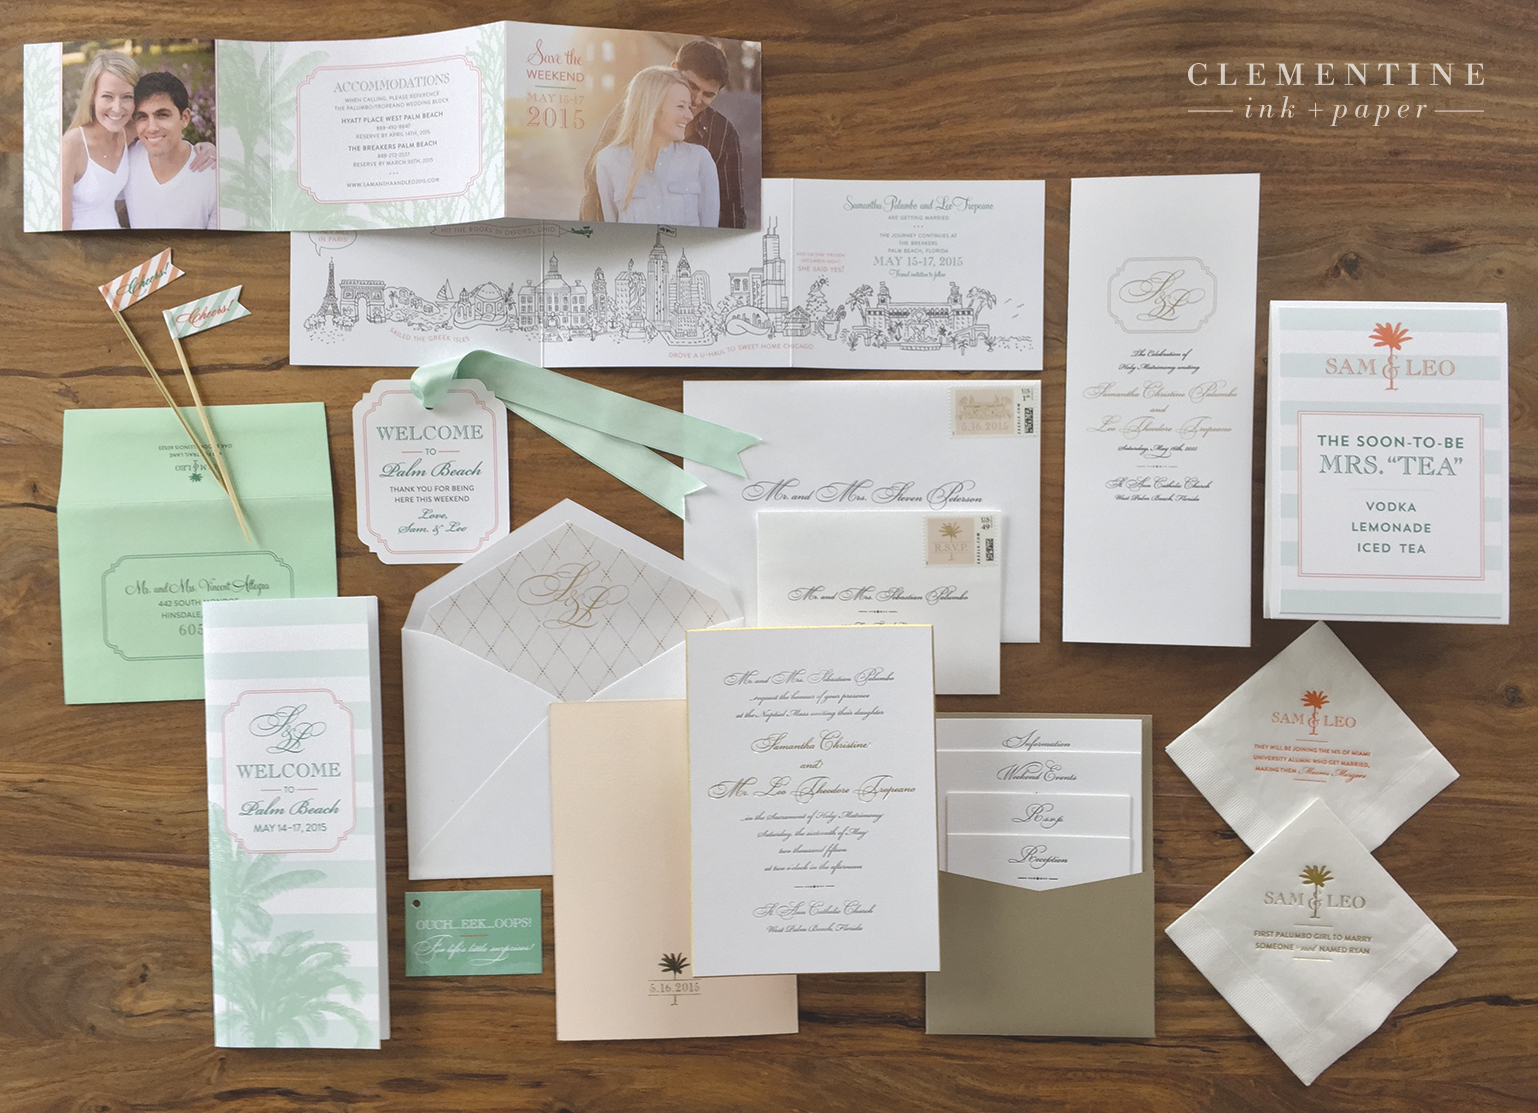 Complete custom stationery suite featuring hand-illustrated save the dates, letterpress invitations, fun weekend itinerary guides, drink flags and napkins.